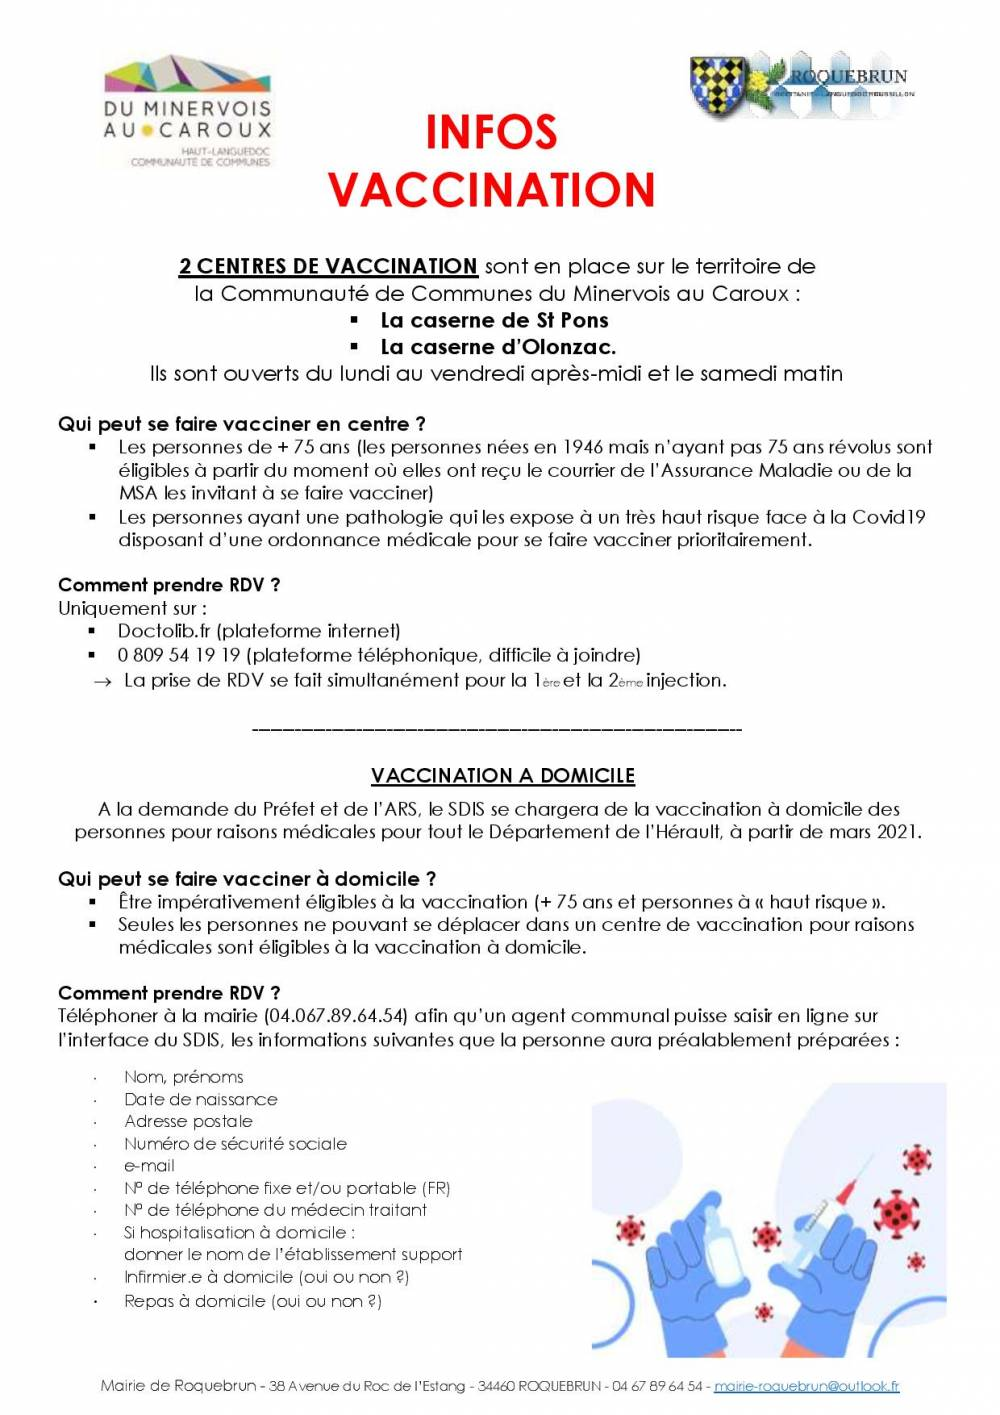 INFOS VACCINATION page 001